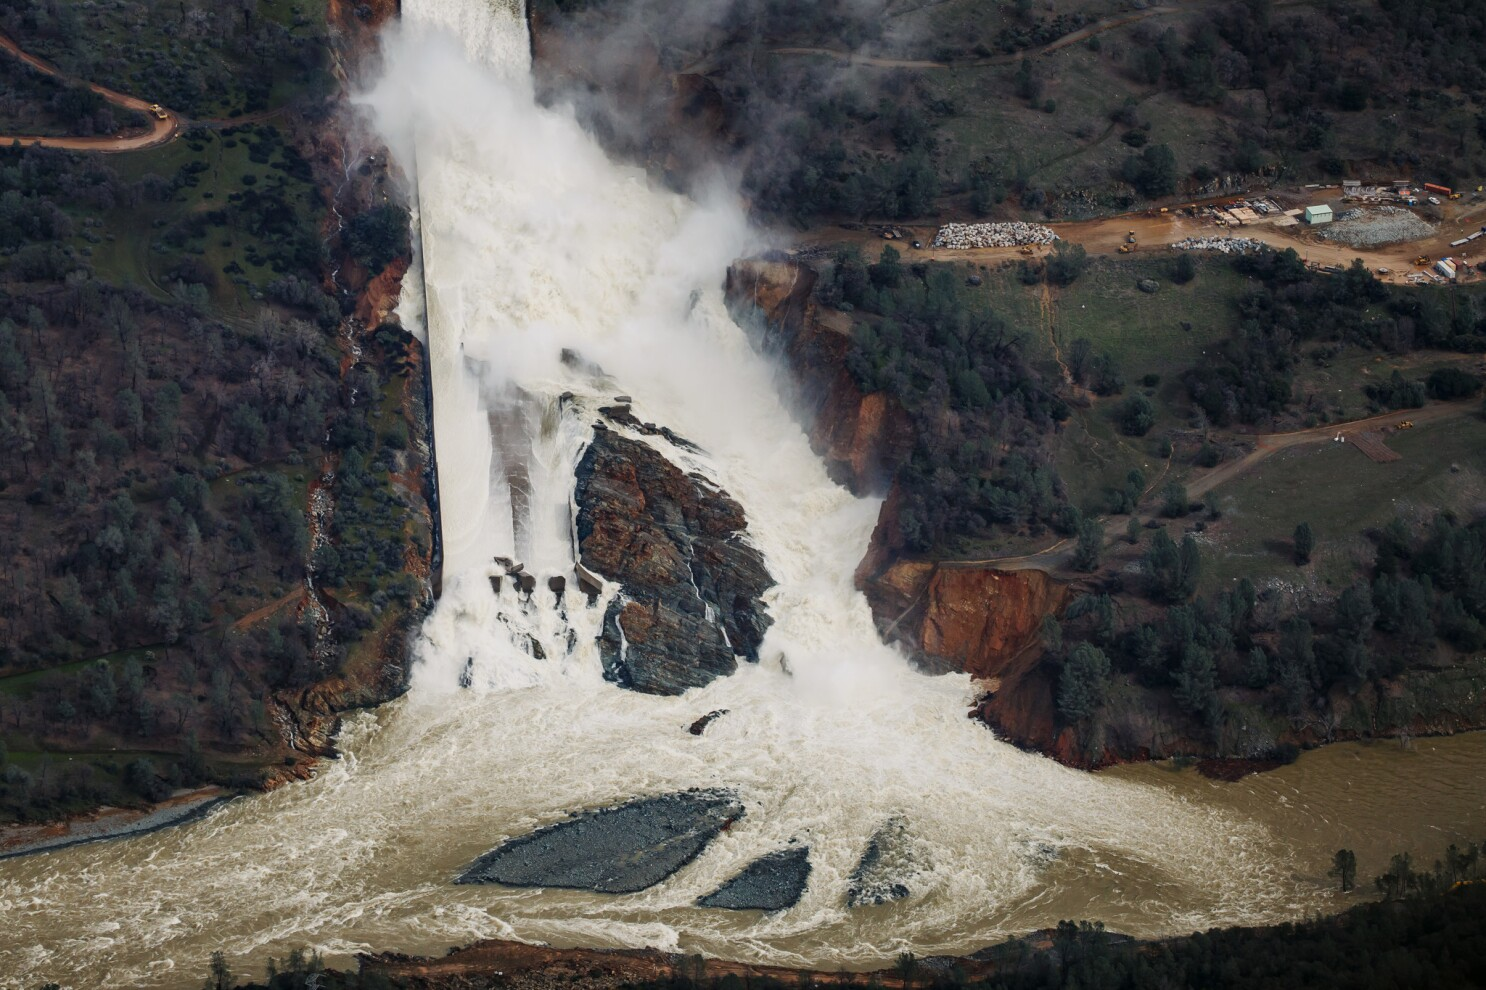 Workers at troubled Oroville Dam need dust-control plan